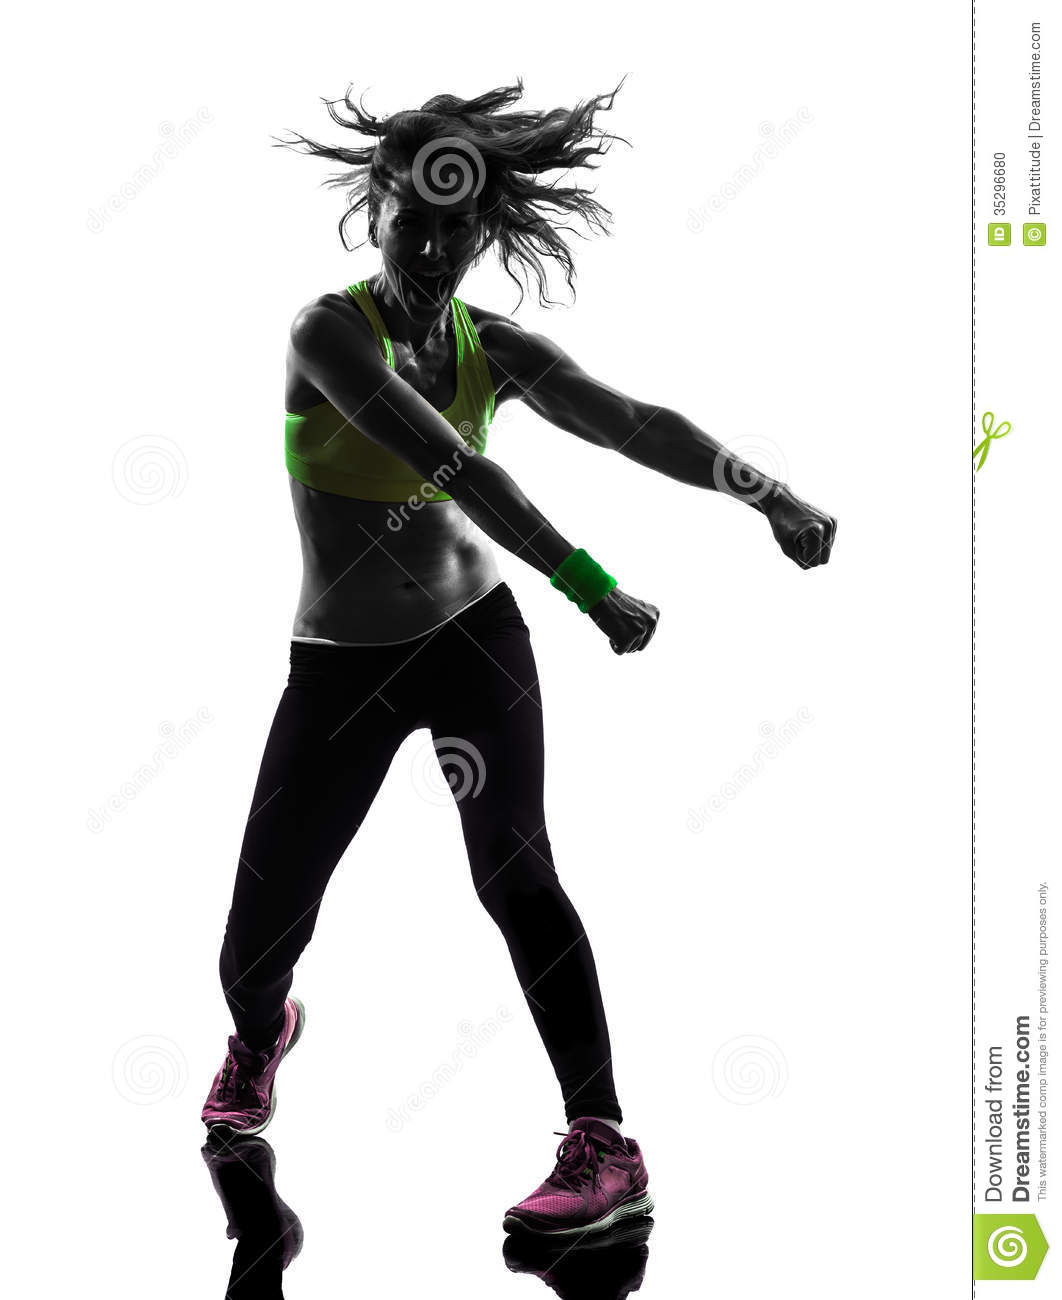 exercising fitness zumba dancing in silhouette on white backgroundZumba Silhouette